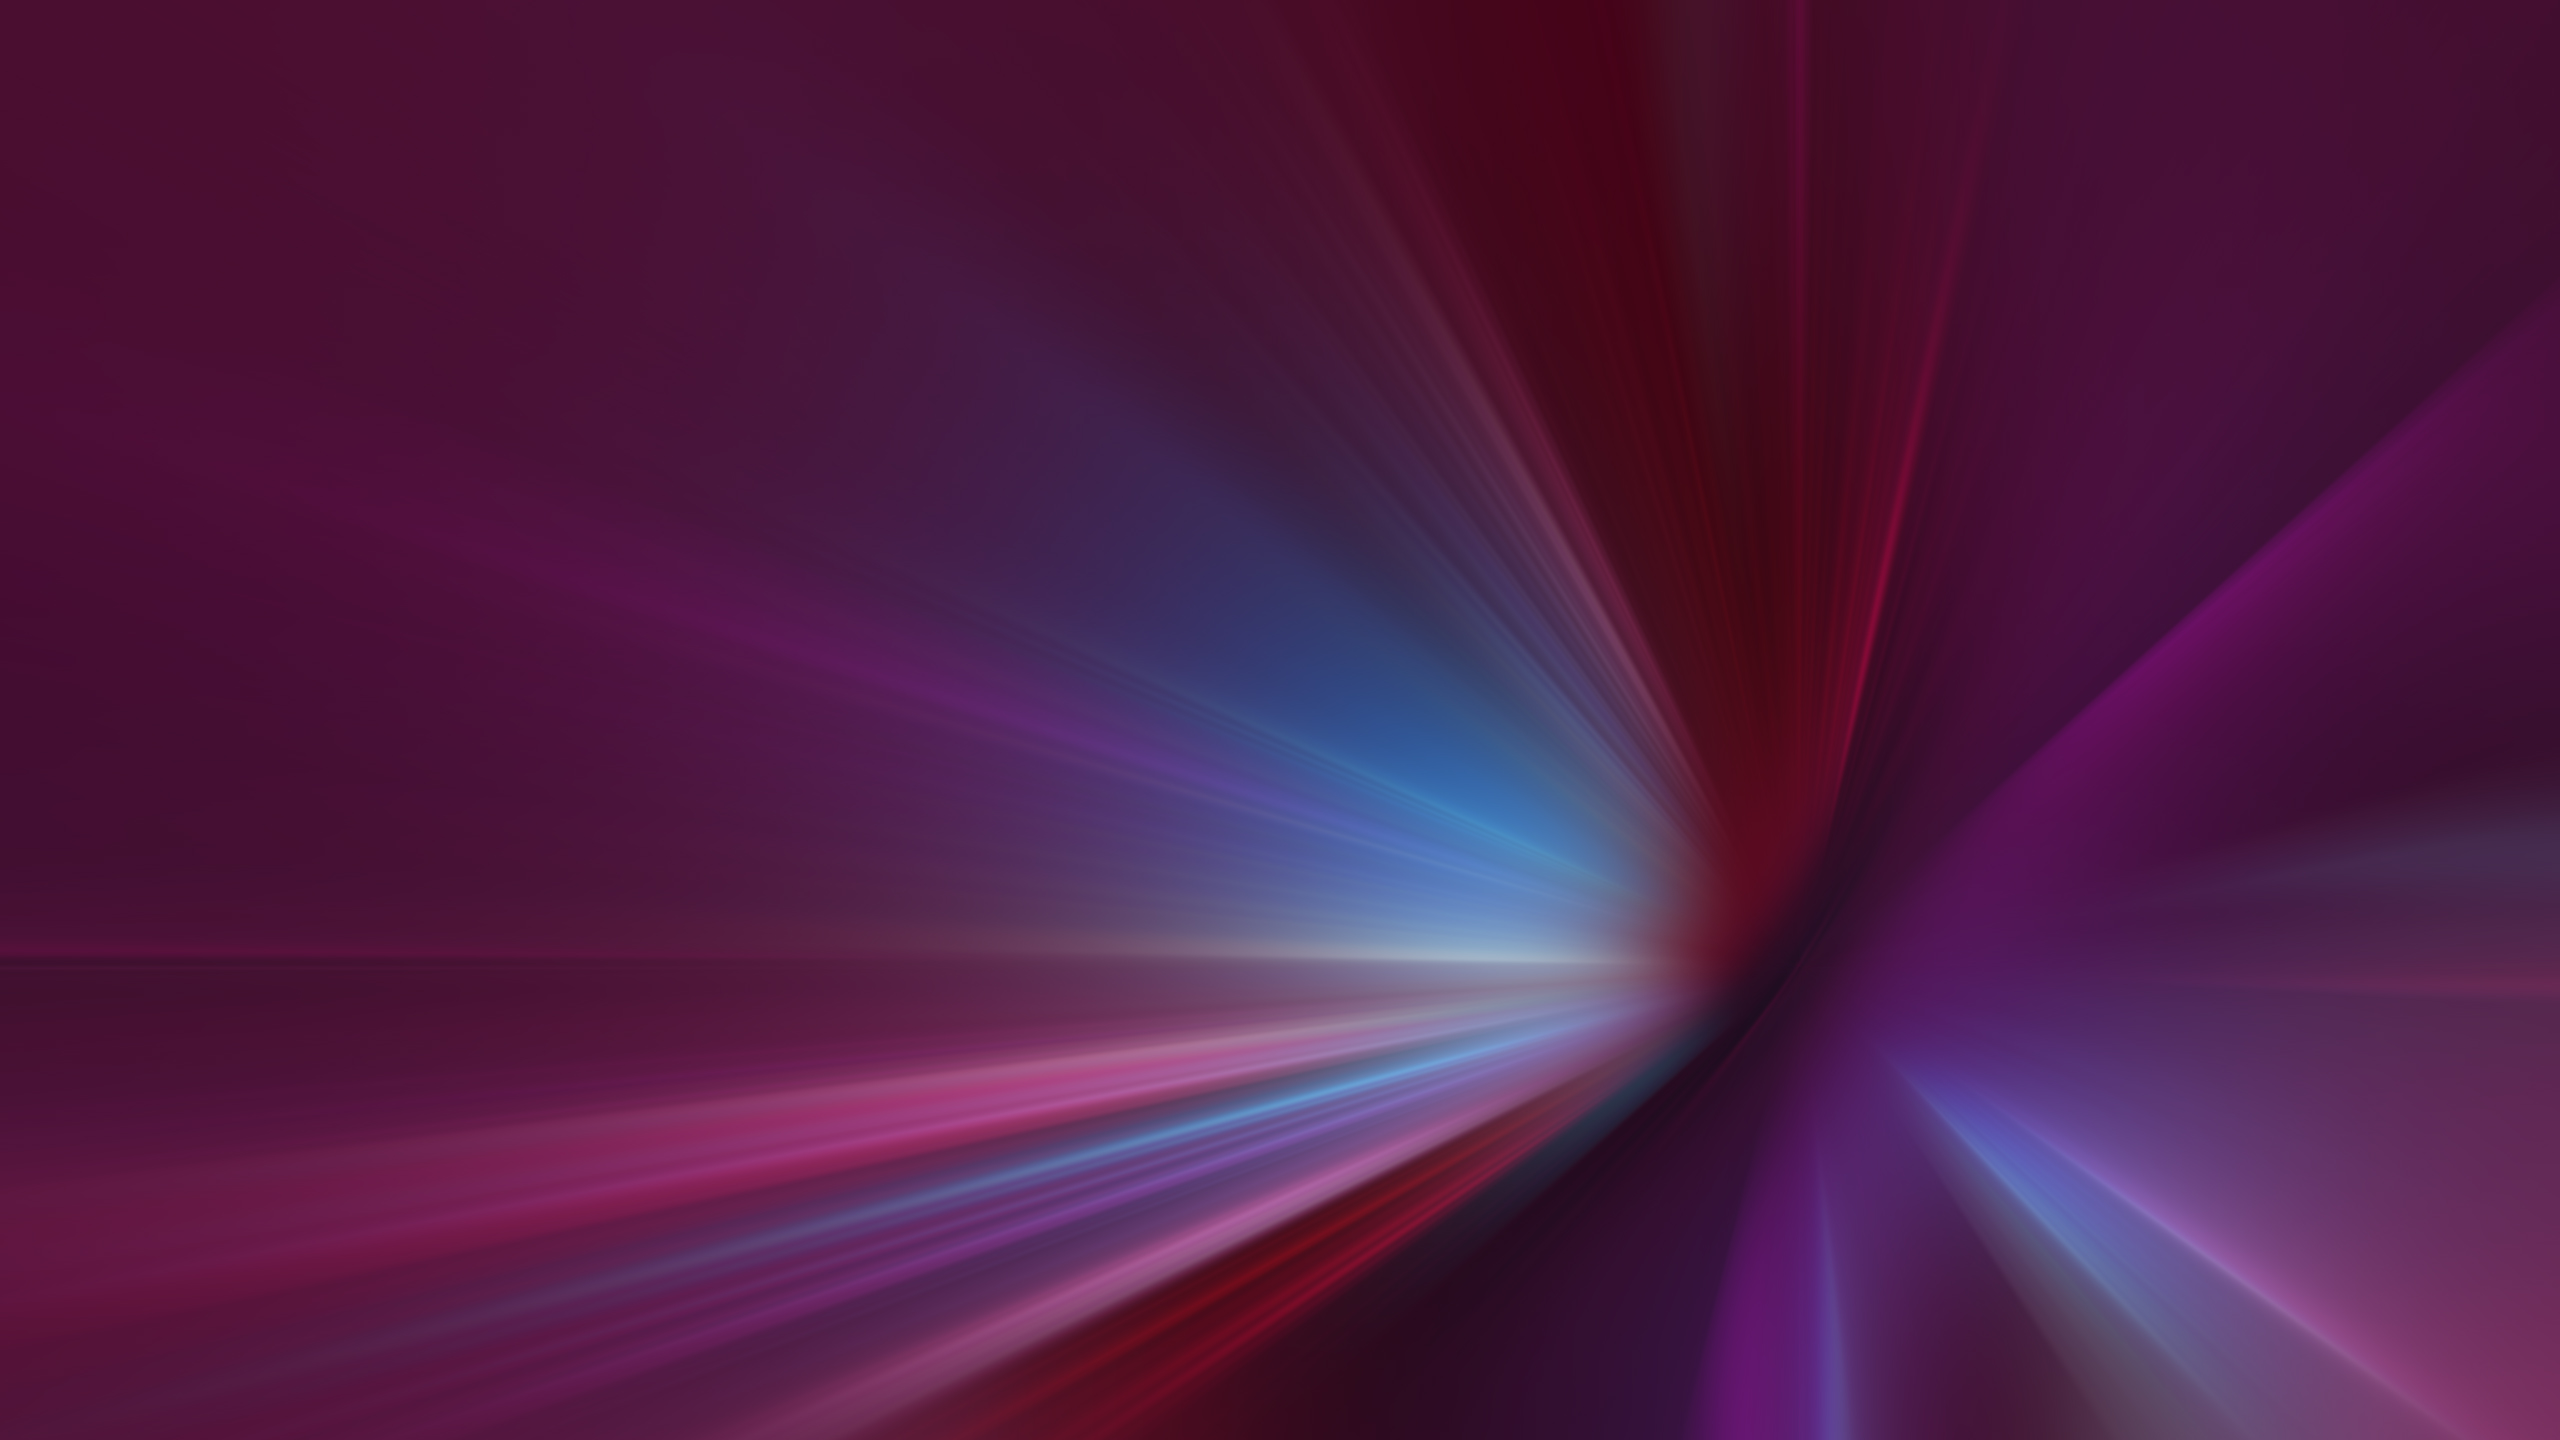 15 awesome hd blurred wallpapers - Speed wallpaper ...